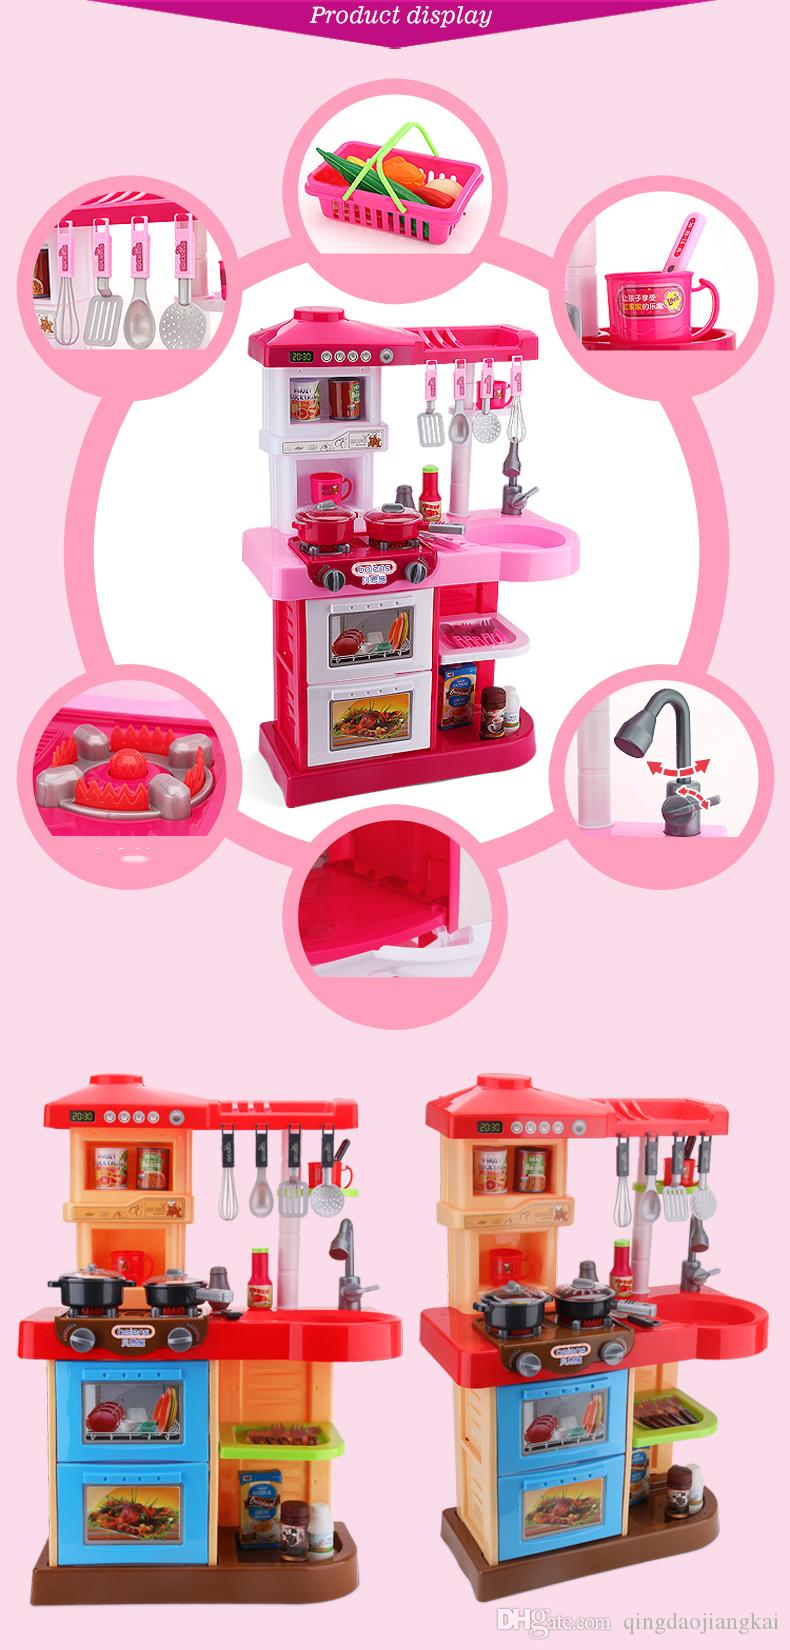 2018 Beiens Brand Toys Kids Kitchen Set Children Kitchen Toys Large Kitchen  Cooking Simulation Model Play Toy For Girl Baby From Qingdaojiangkai, ...